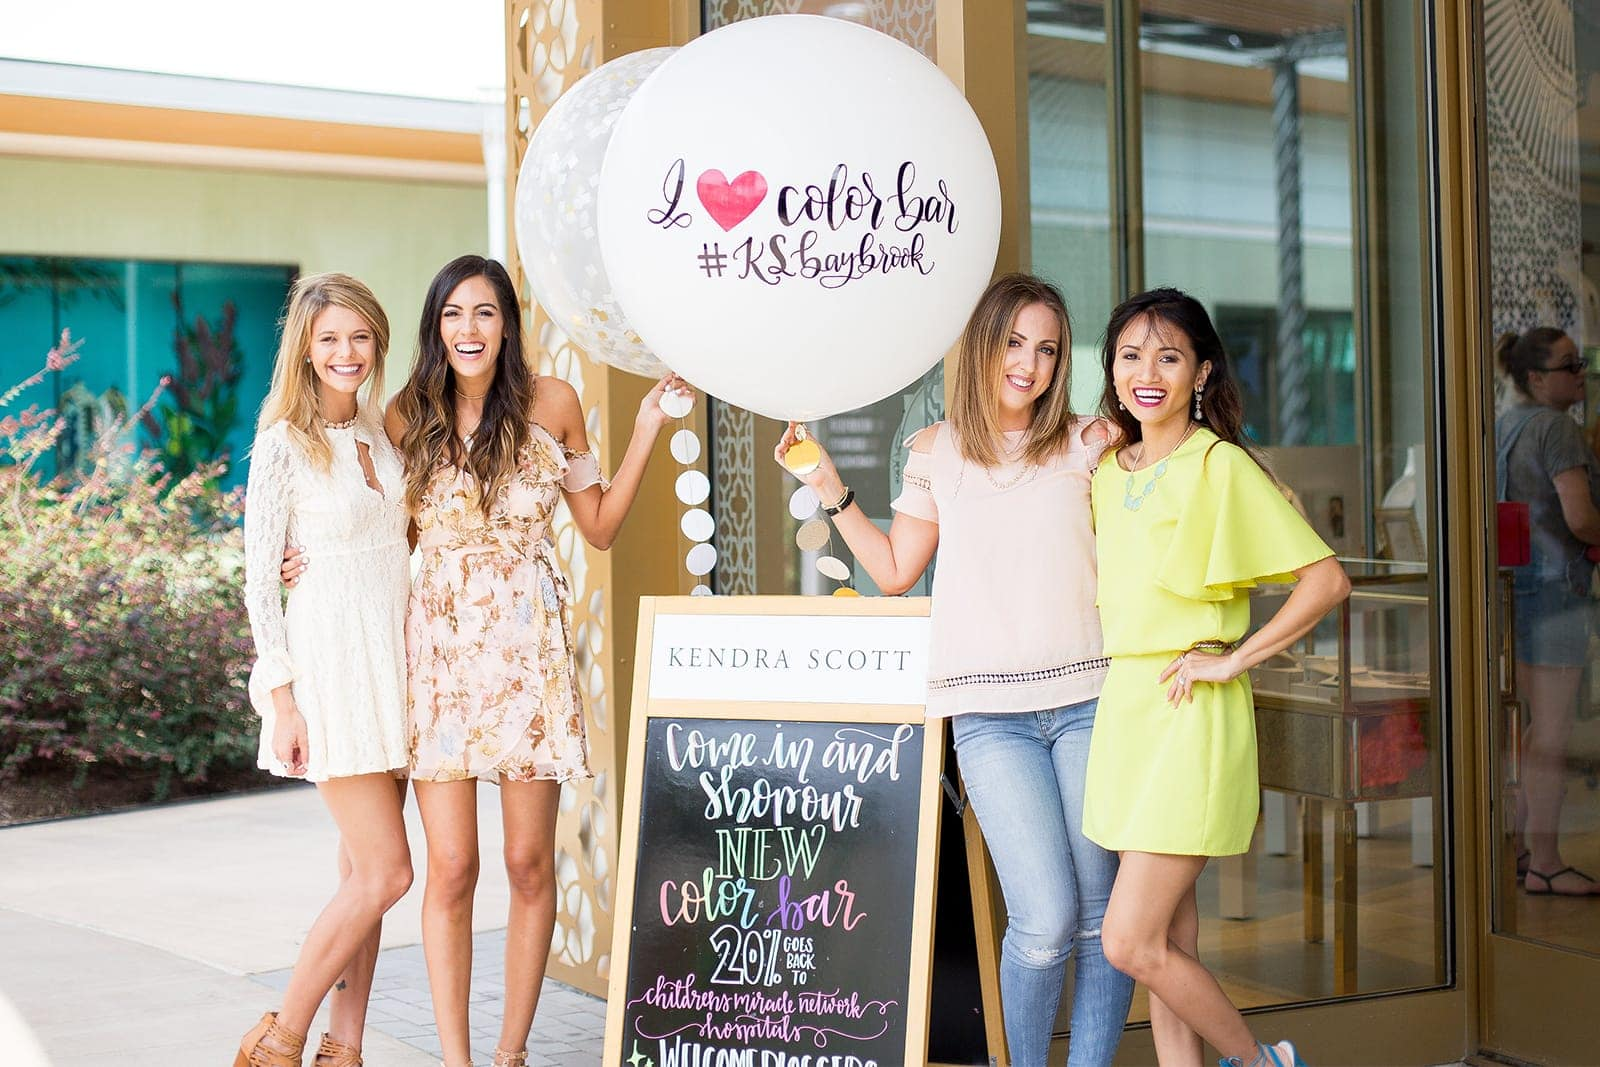 Kendra Scott blogger party